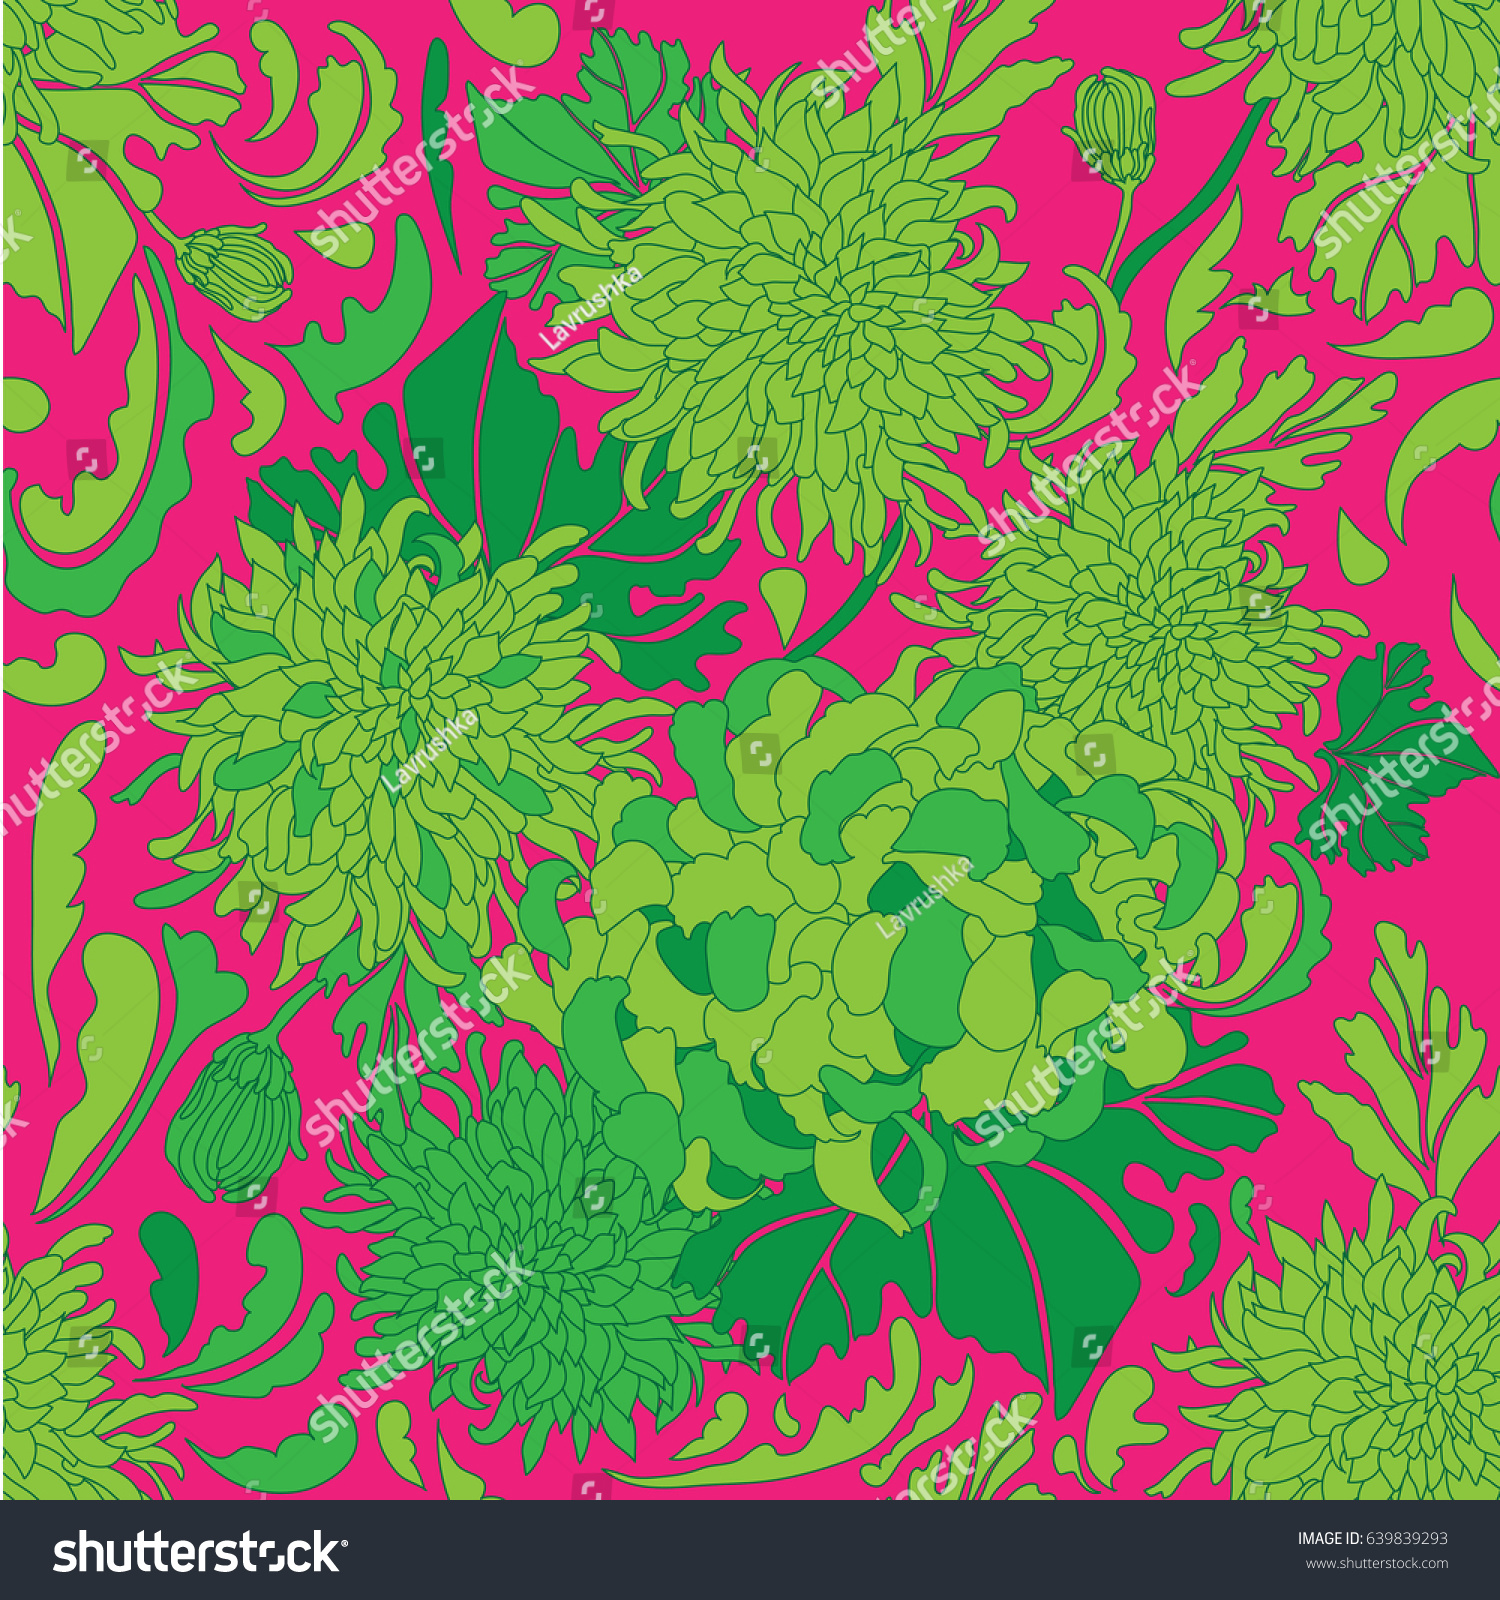 Pink floral seamless vector background floral hrysanthemum seamless - Seamless Vector Flower Pattern In The Style Of The 70 S Green Flower On A Pink